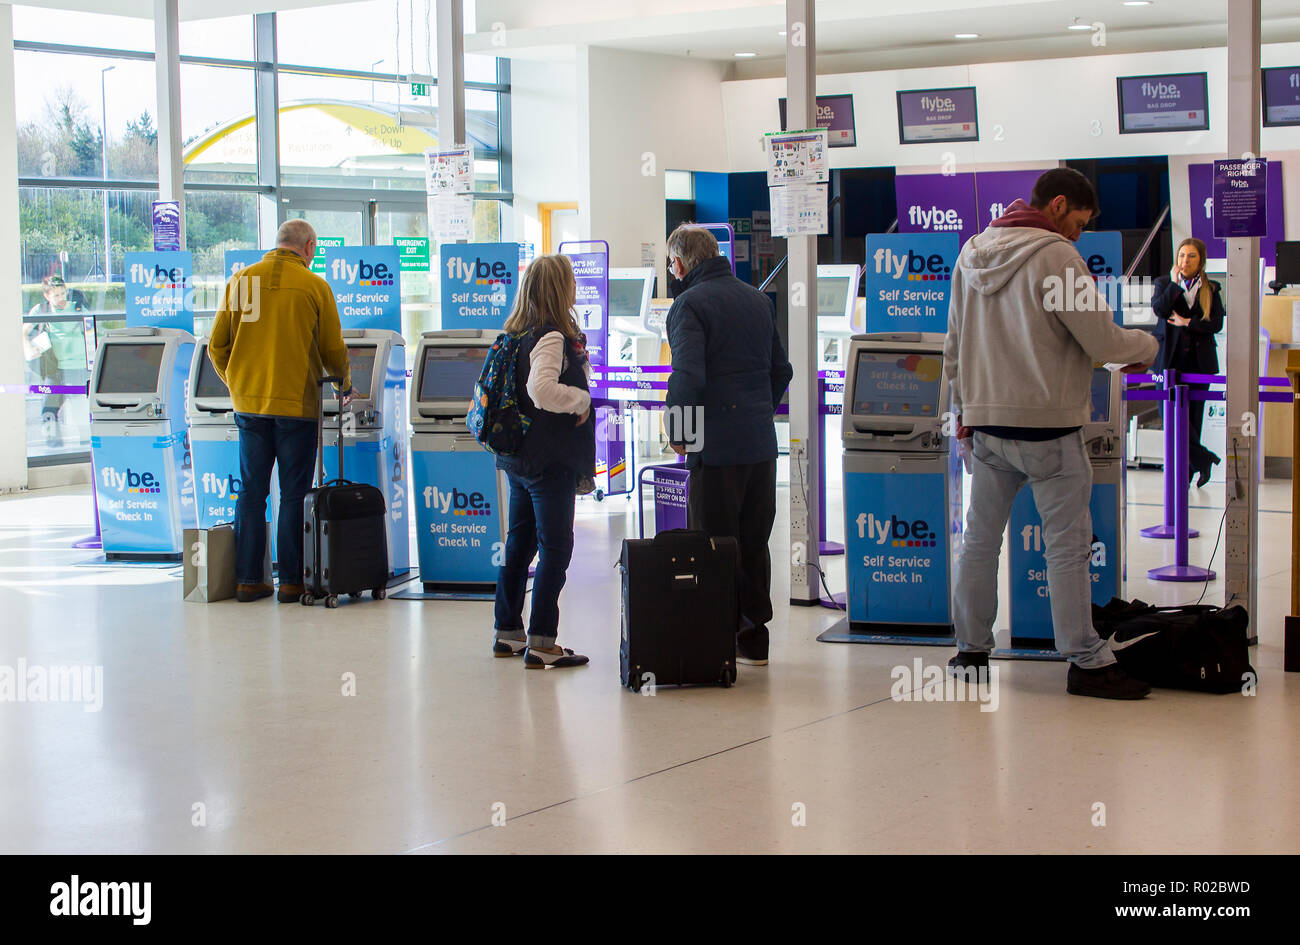 2 May 2018 Busy Flybe self check in desks at the George Best Belfast City Airport in Northern Ireland. Passengers with hand luggage only take the spee - Stock Image